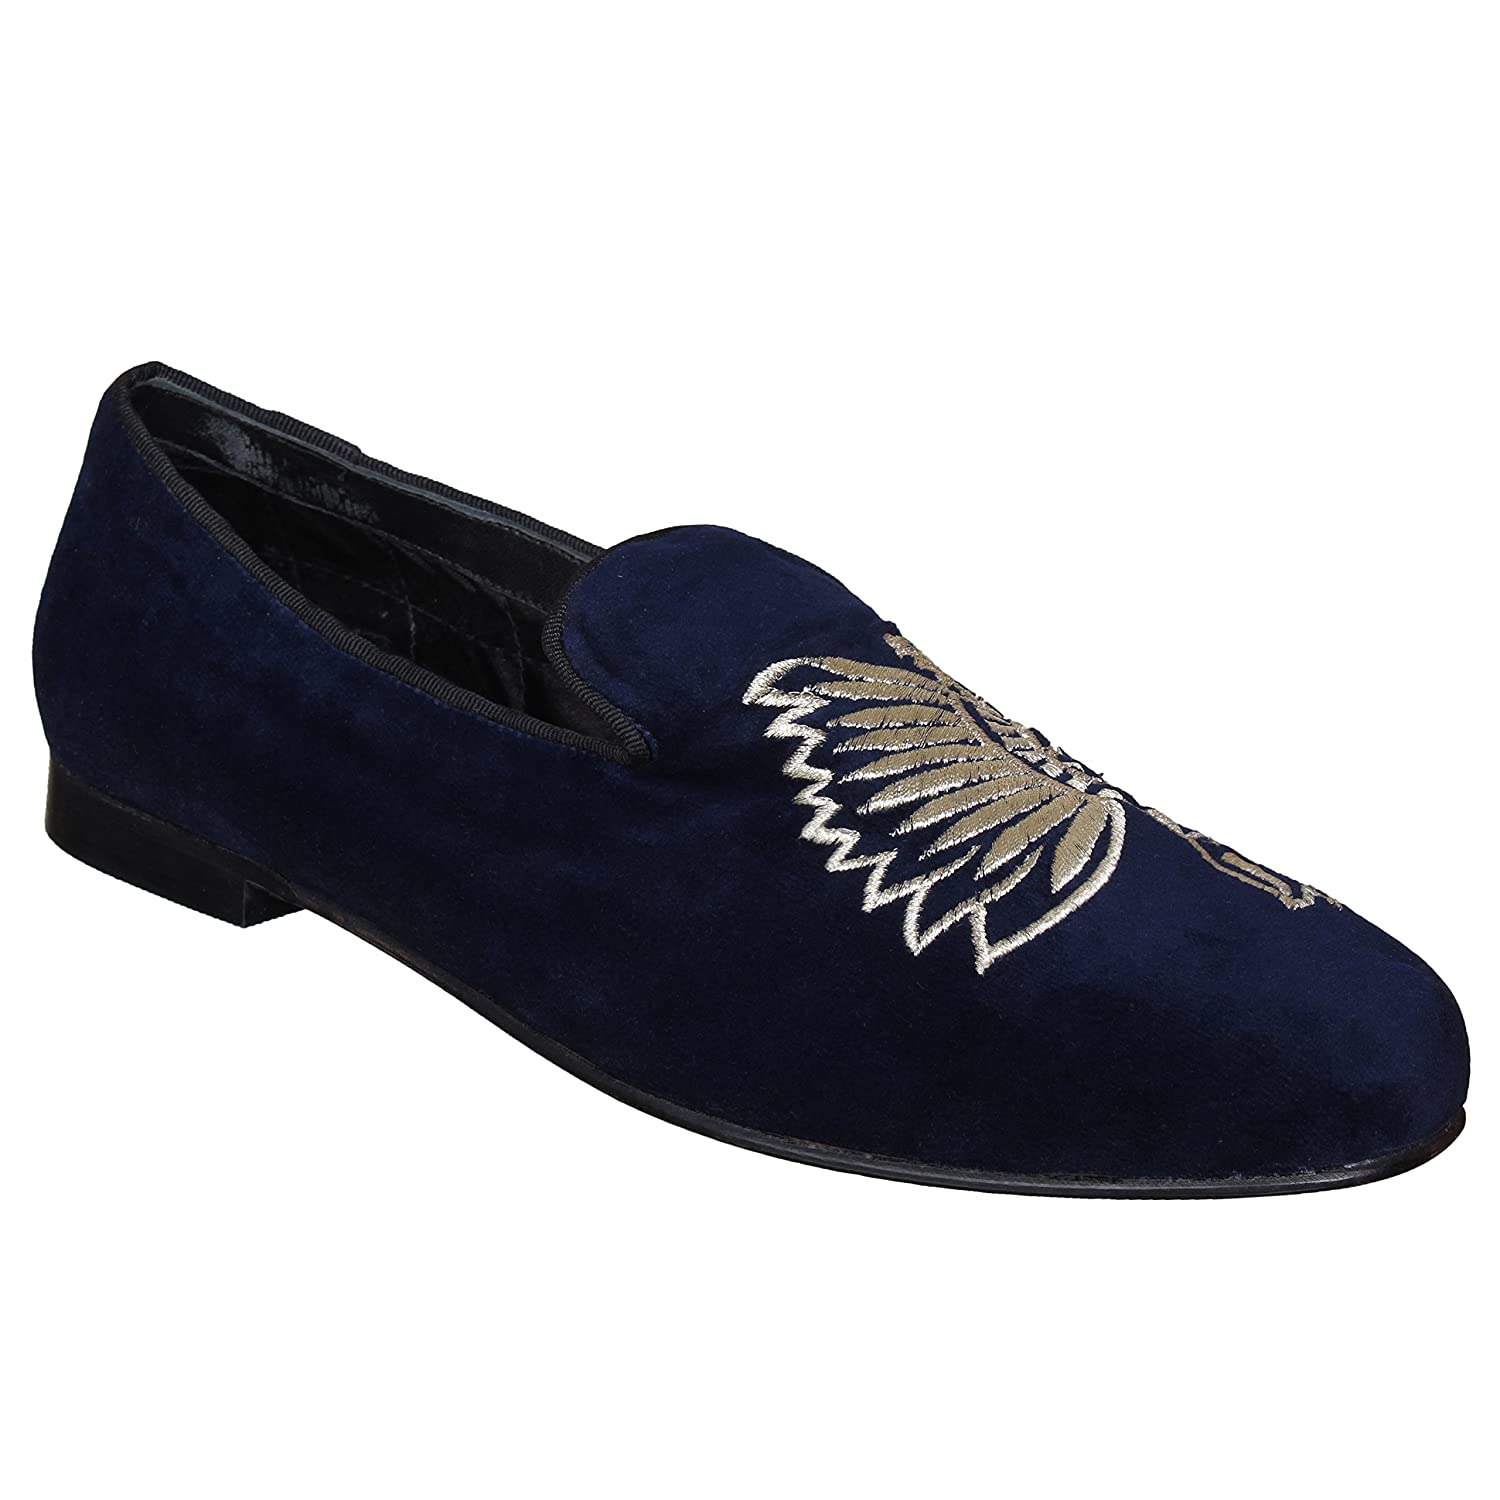 3bcf0f524b191 Amazon.com: Lozano Blue velvet slip ons with butterfly embroidery ...